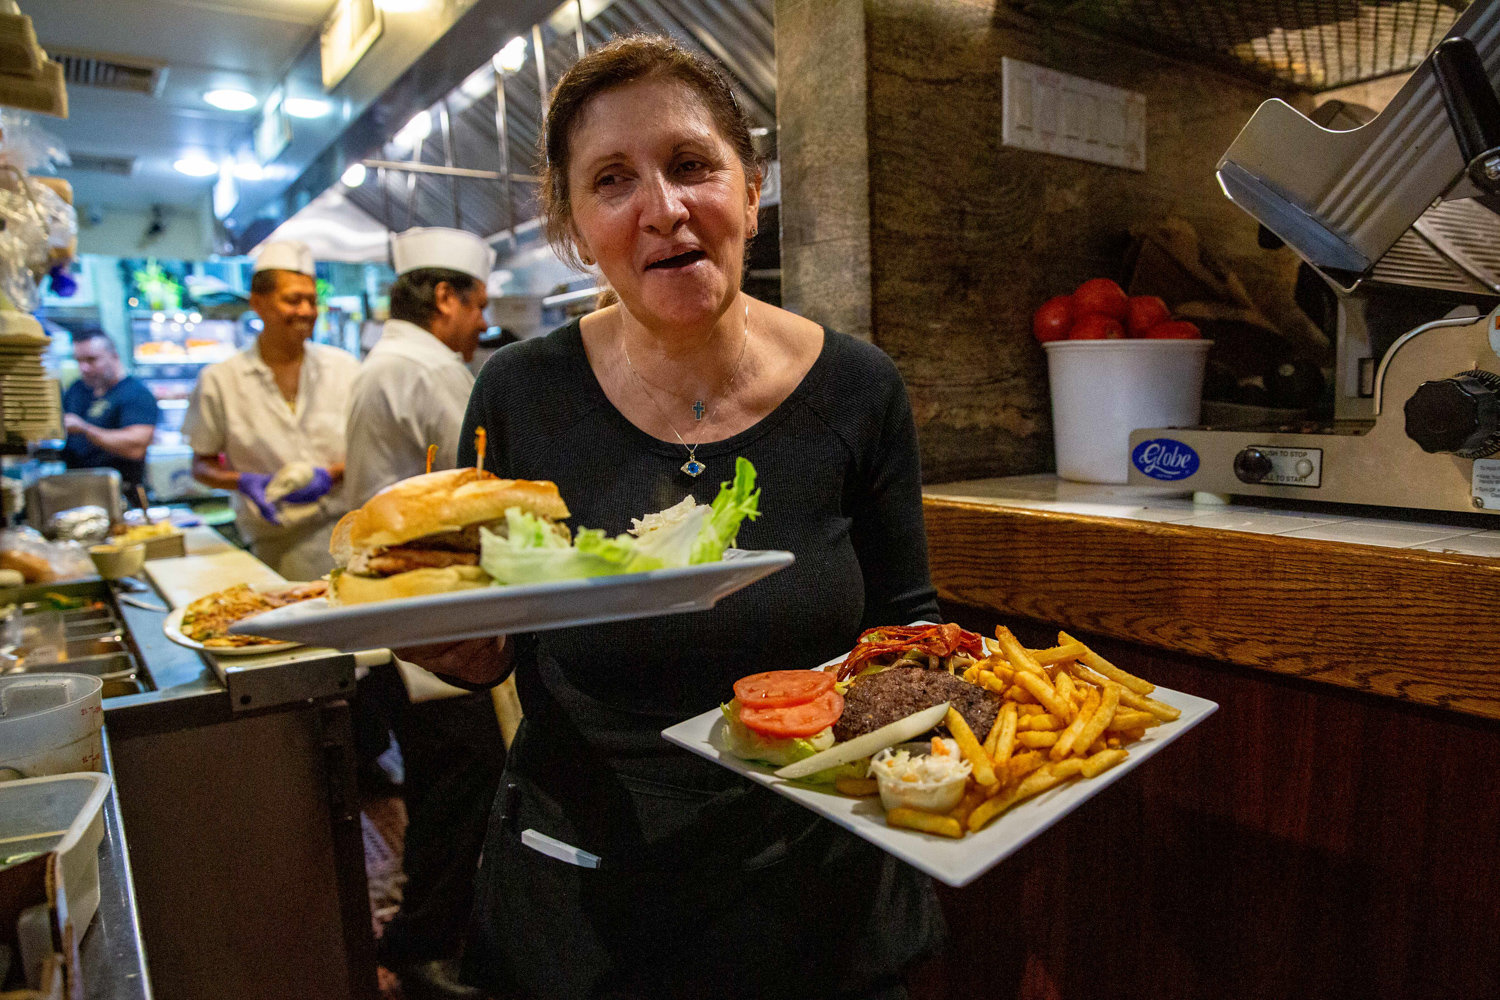 Pamela Liritsis, a familiar face to locals and regulars alike, carries freshly cooked cheeseburgers and fries, a classic diner staple, out of the kitchen to customers at Gold Mine Café on the corner of Broadway and West 231st Street.